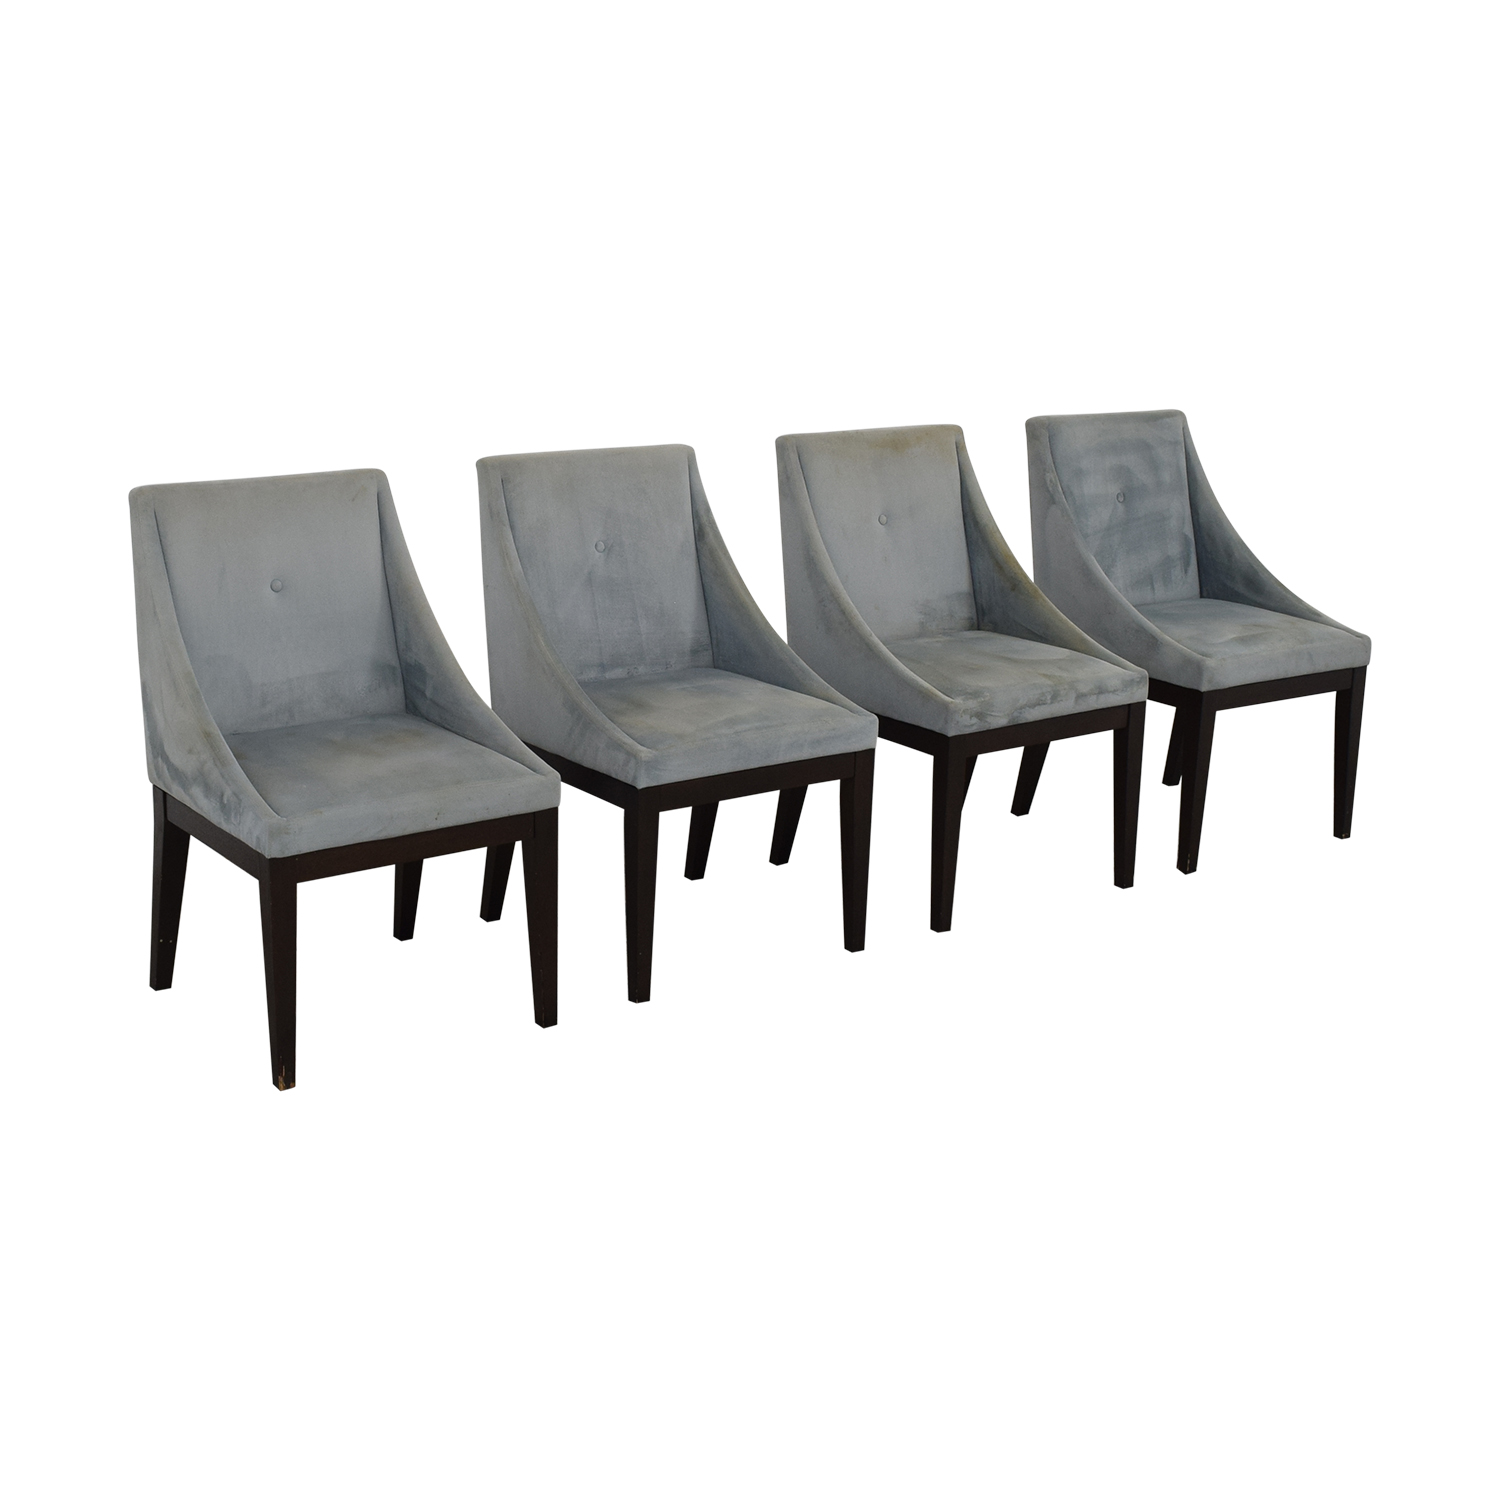 West Elm West Elm Upholstered Dining Chairs